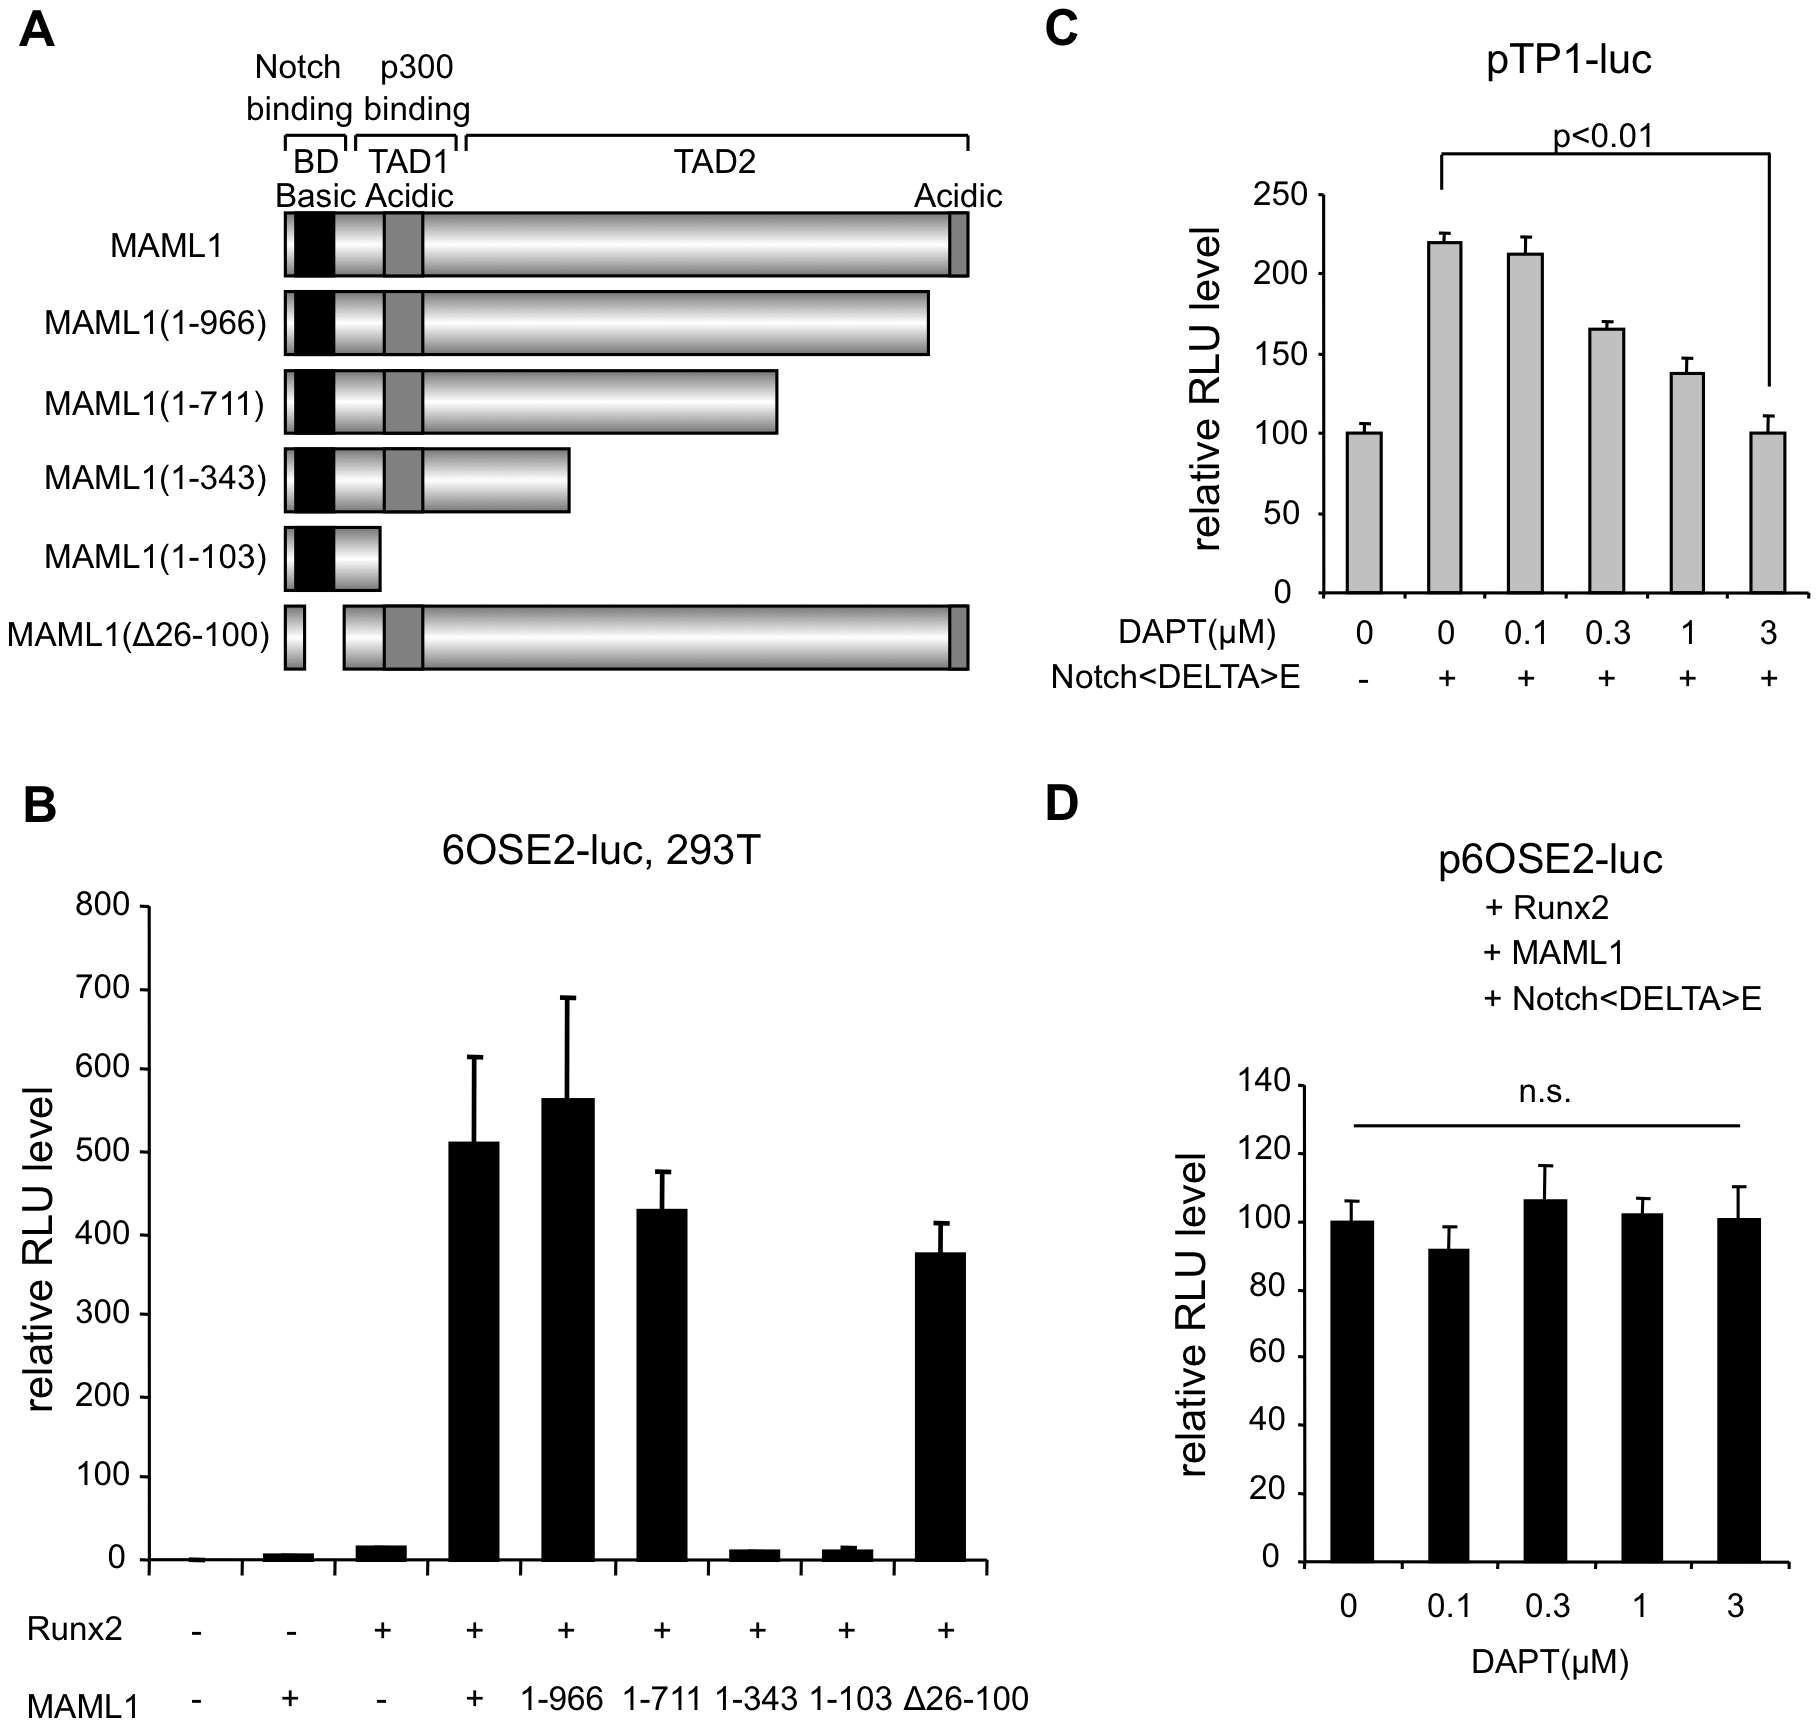 MAML1 enhances Runx2 activity in a Notch-independent manner in vitro.